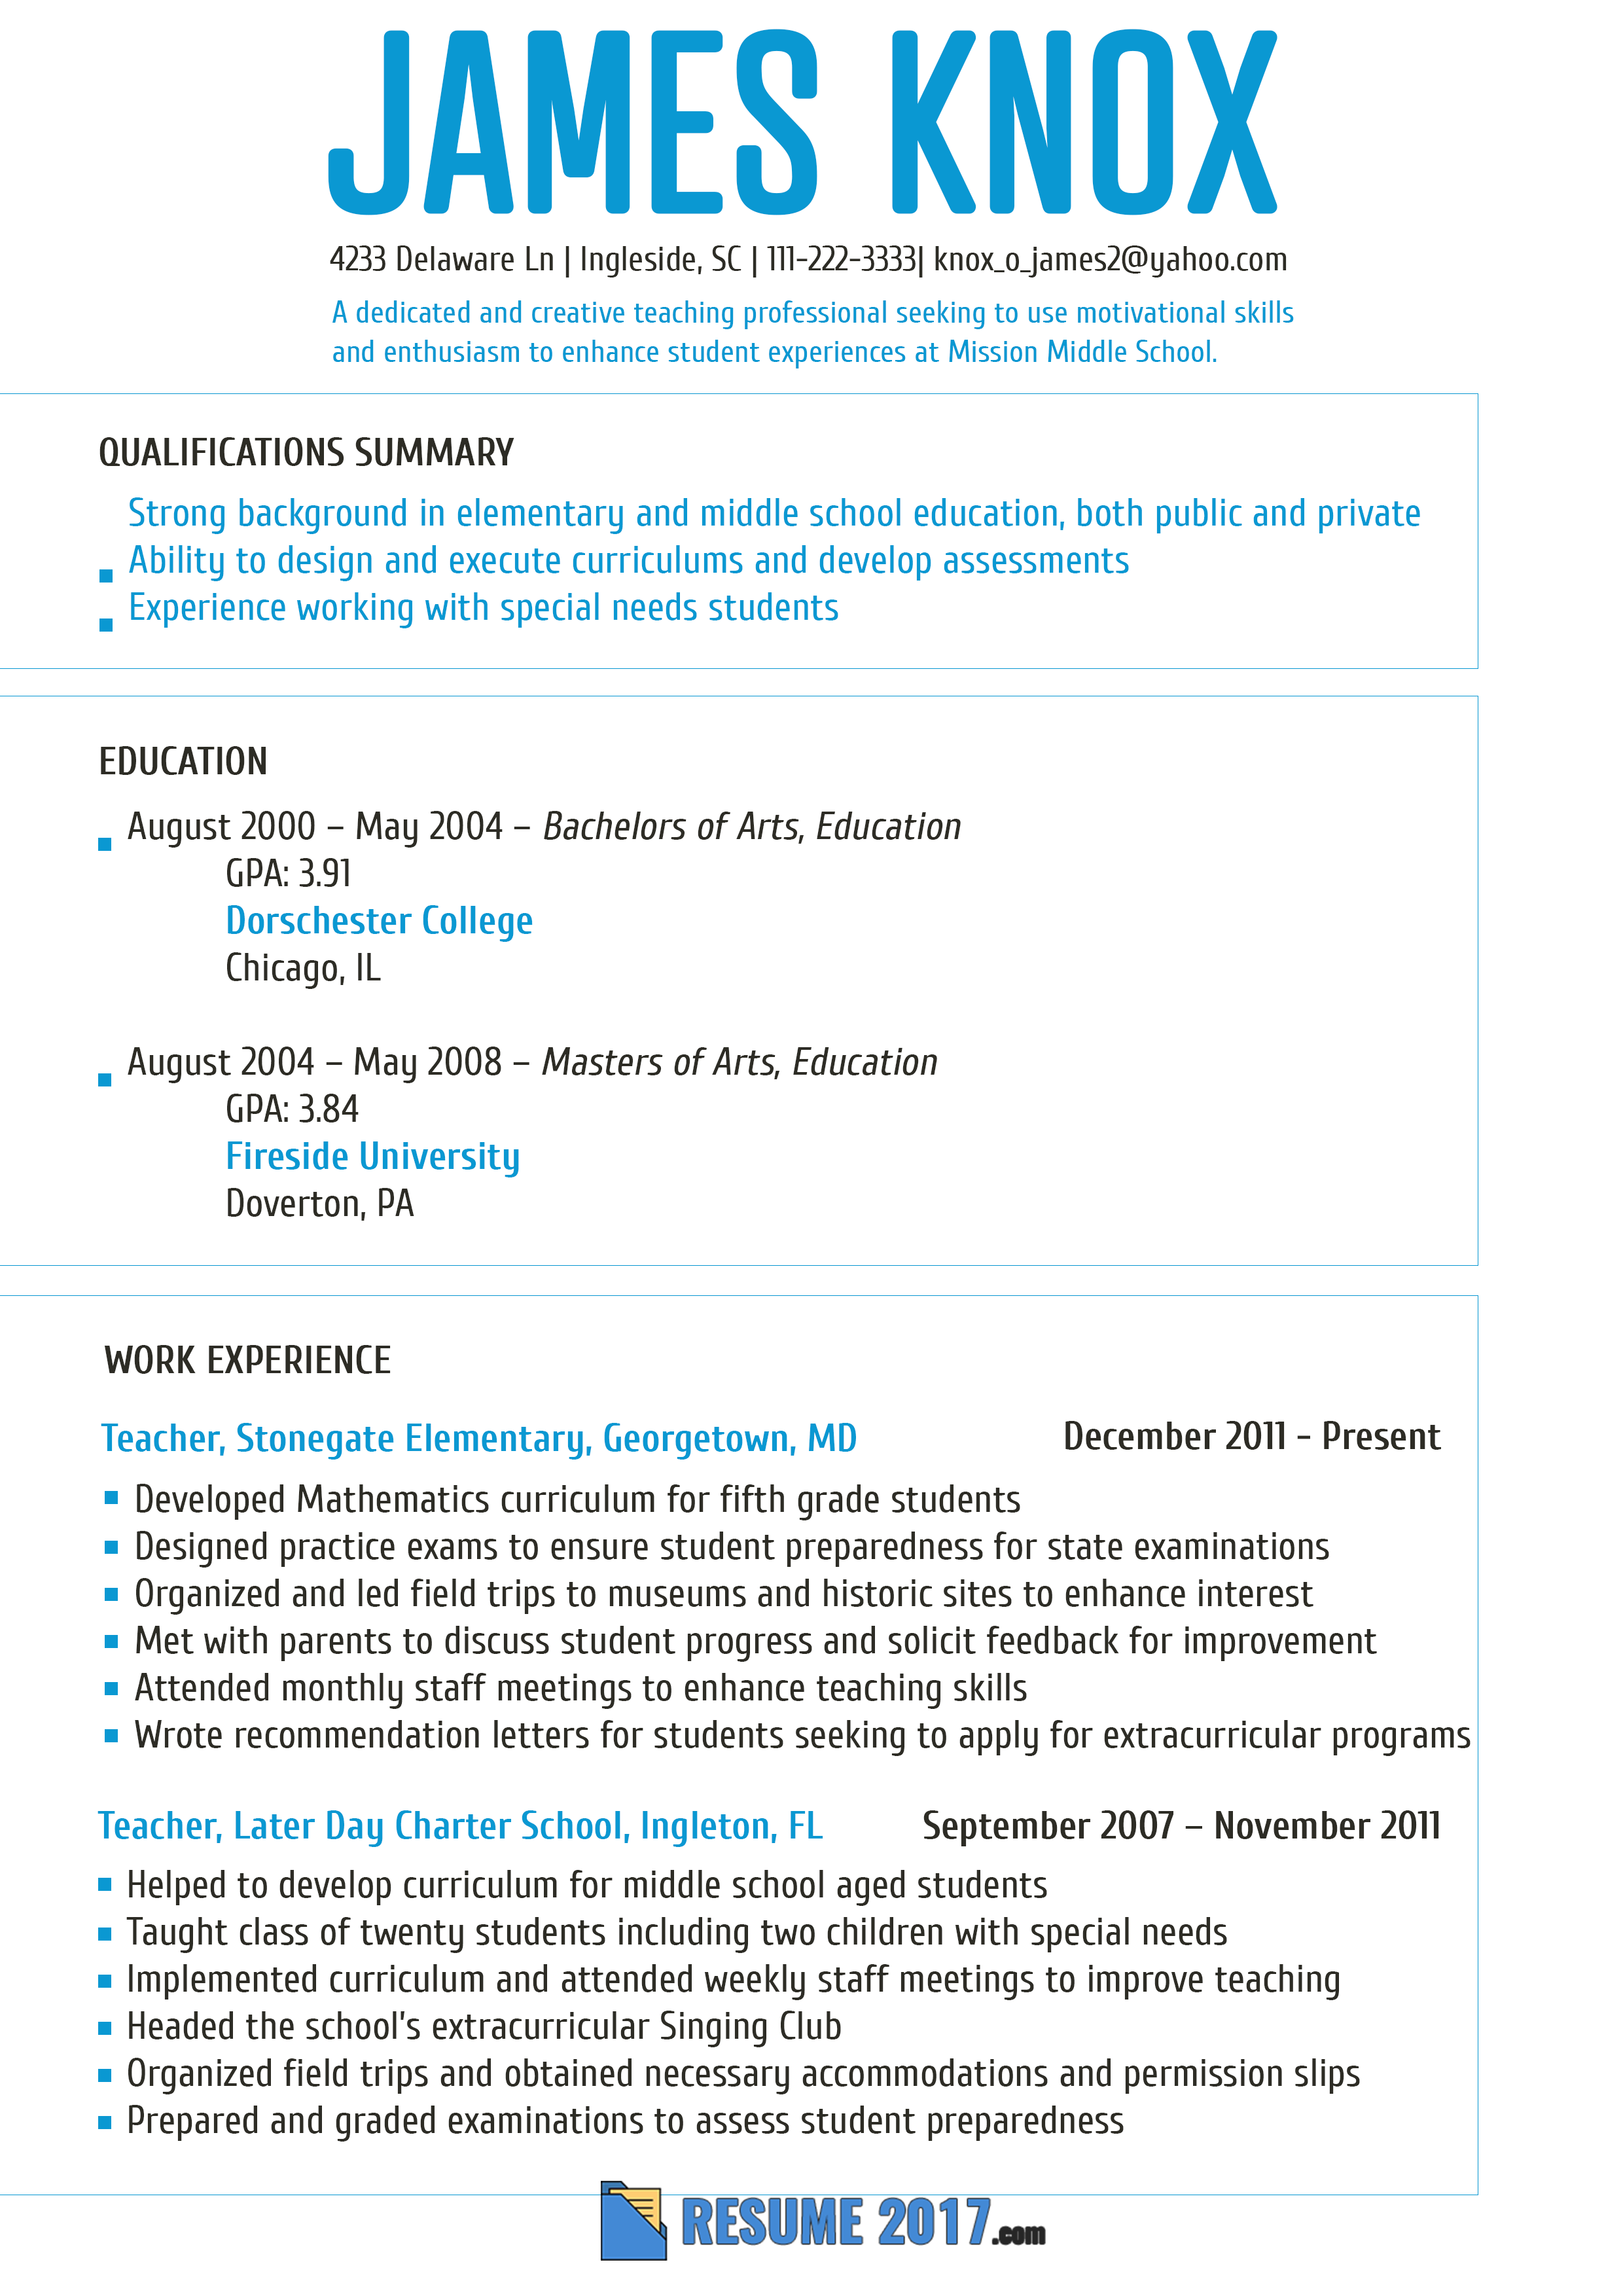 Great Teacher Resume Template 2018 That Will Make Your Resume Leave A  Positive Impact. Chekc This Site And Get More Samples Like This ...